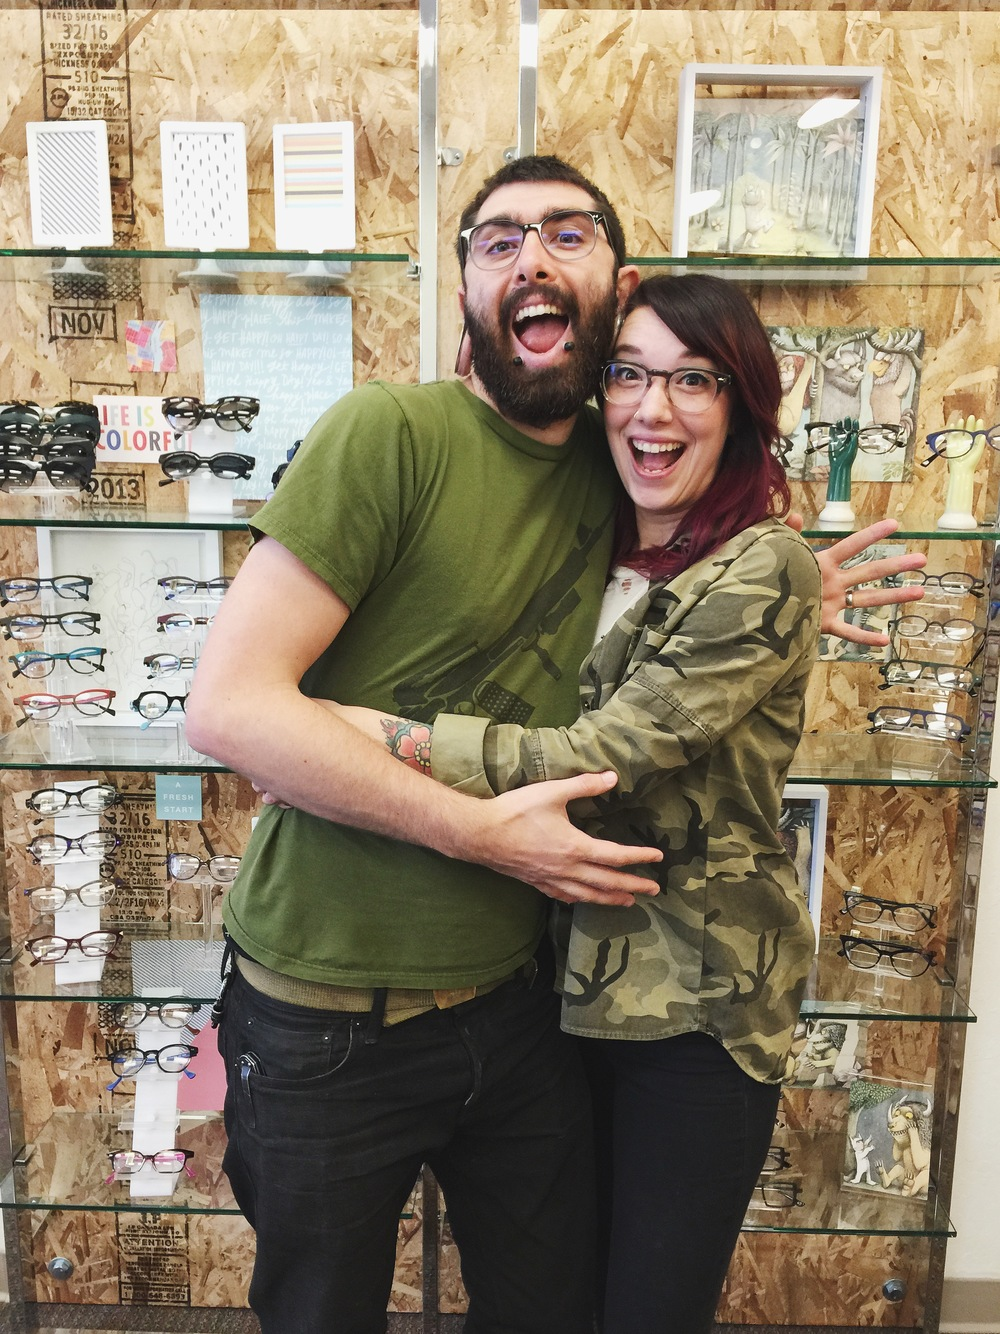 These glasses have officially tied the knot. Congratulations you two lovebirds!! ?♡? Oliver Peoples + Oliver Peoples.